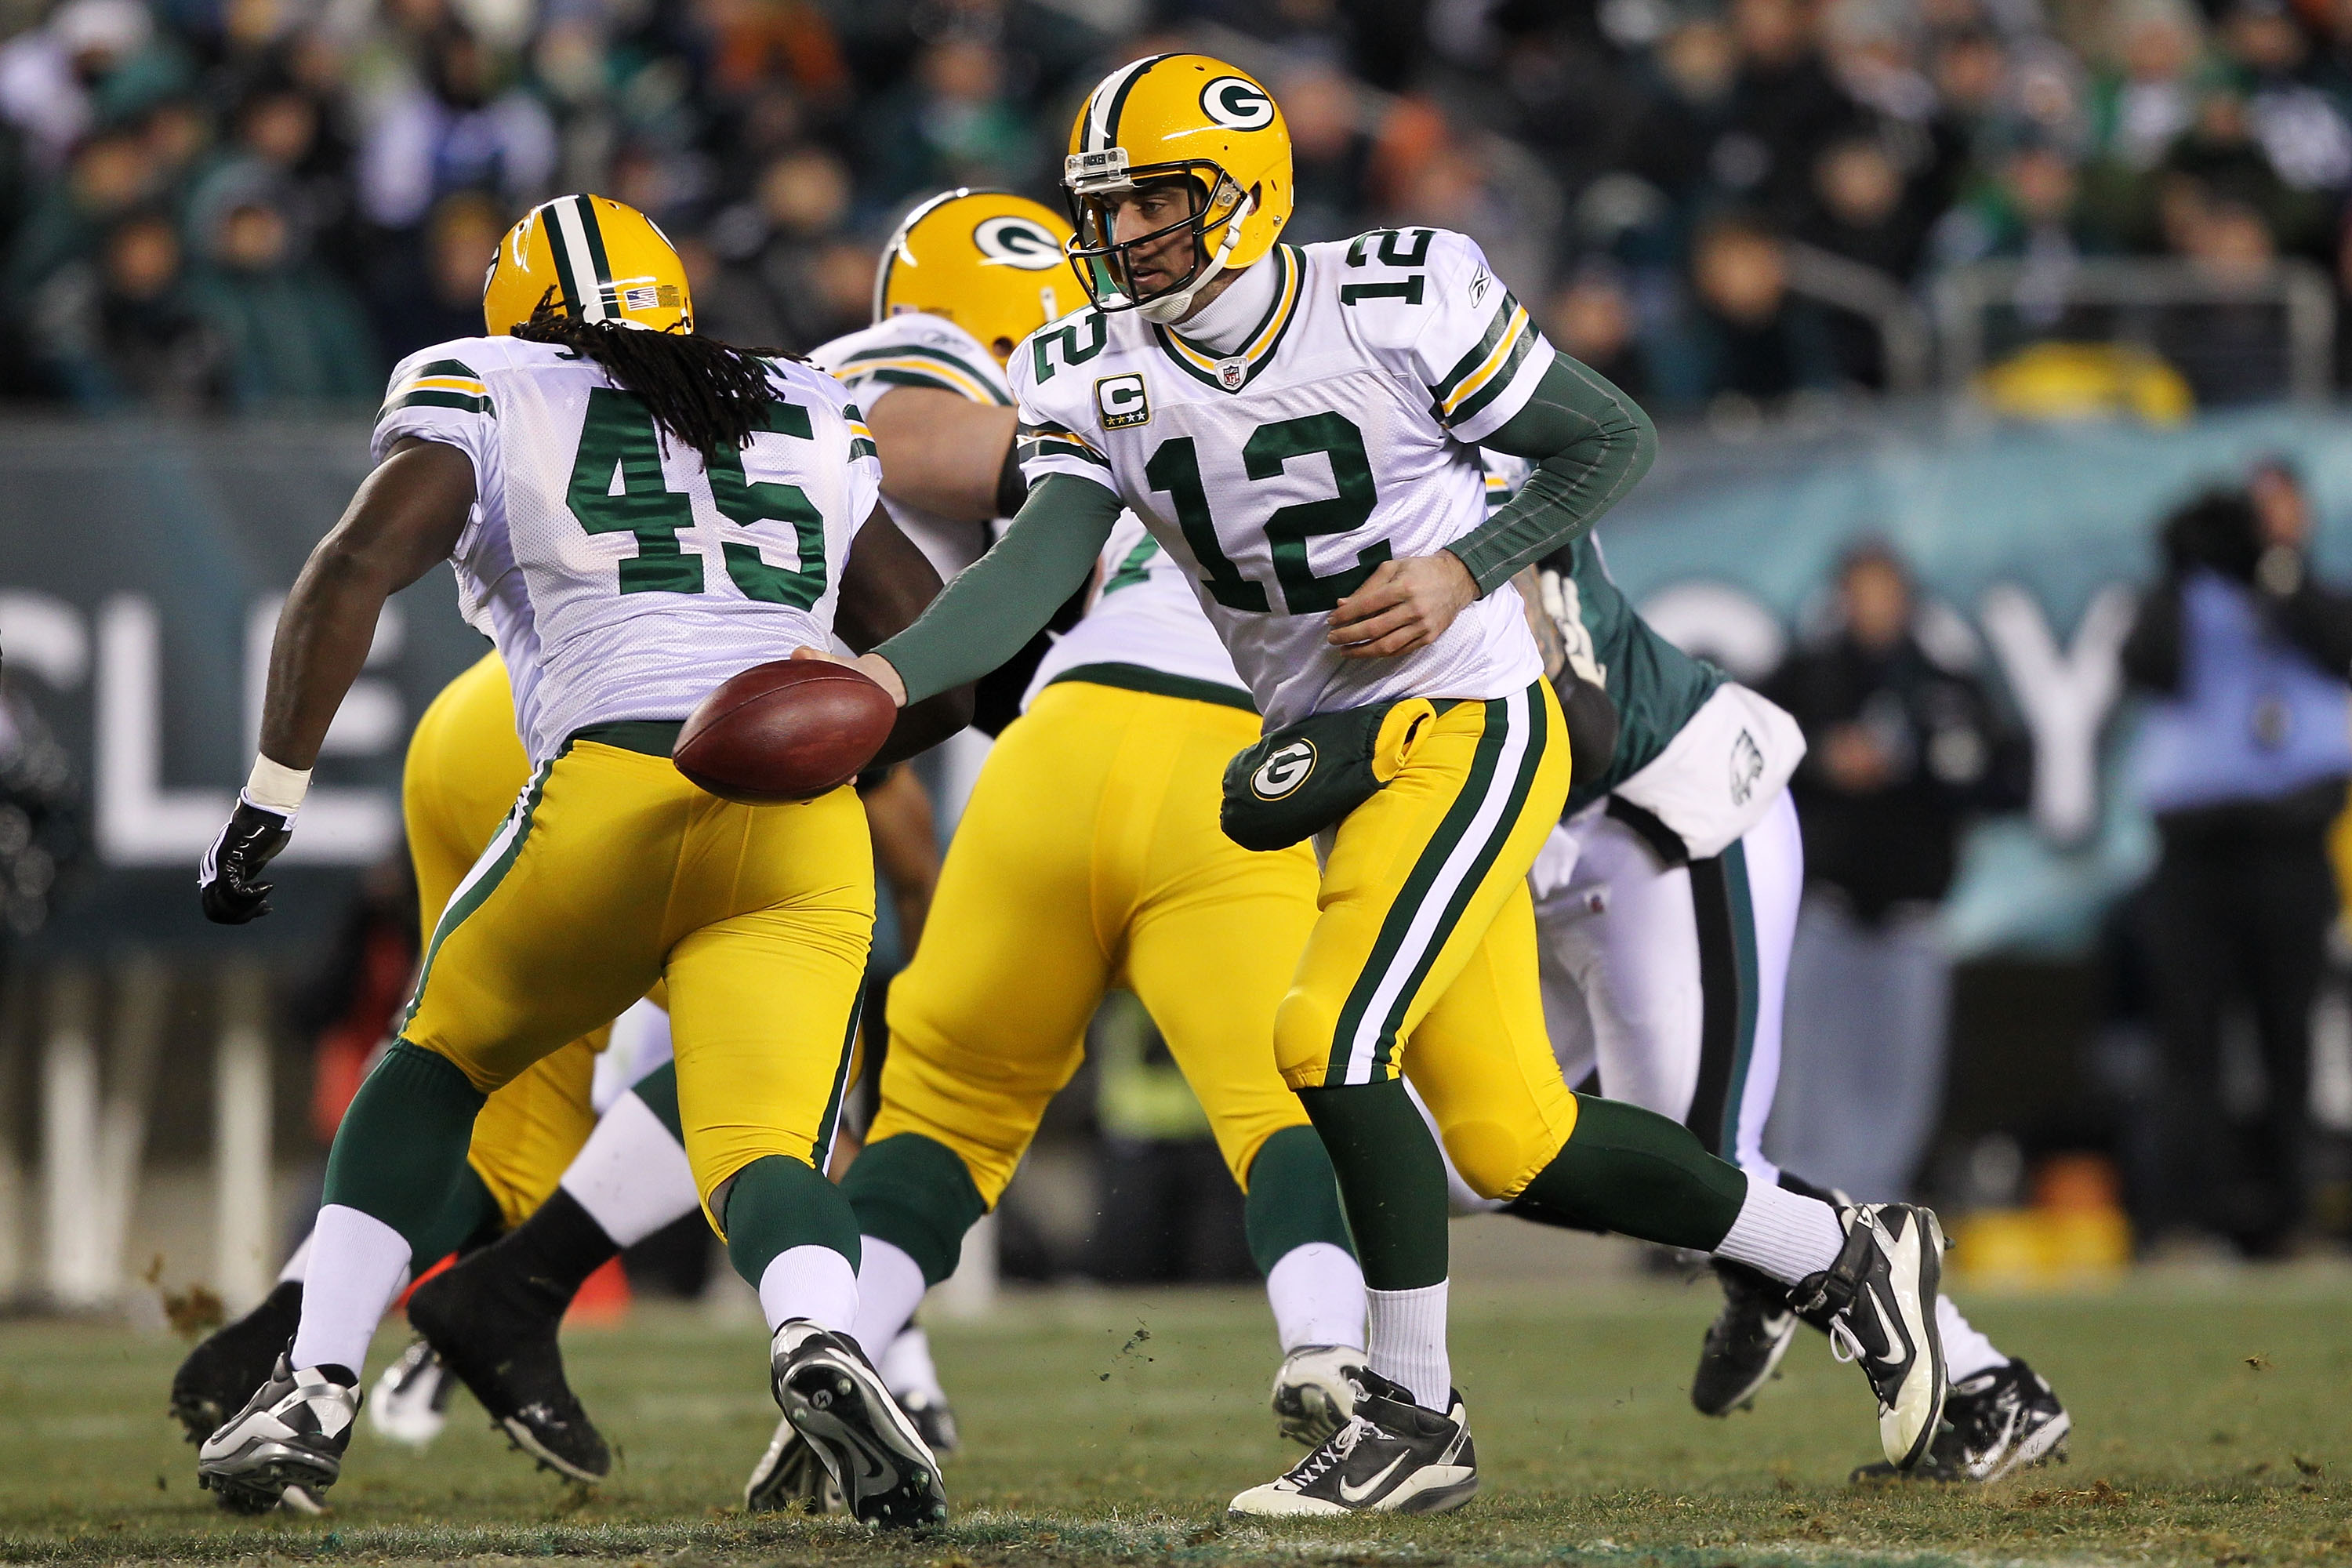 PHILADELPHIA, PA - JANUARY 09:  Aaron Rodgers #12 of the Green Bay Packers runs a play against the Philadelphia Eagles during the 2011 NFC wild card playoff game at Lincoln Financial Field on January 9, 2011 in Philadelphia, Pennsylvania.  (Photo by Al Be